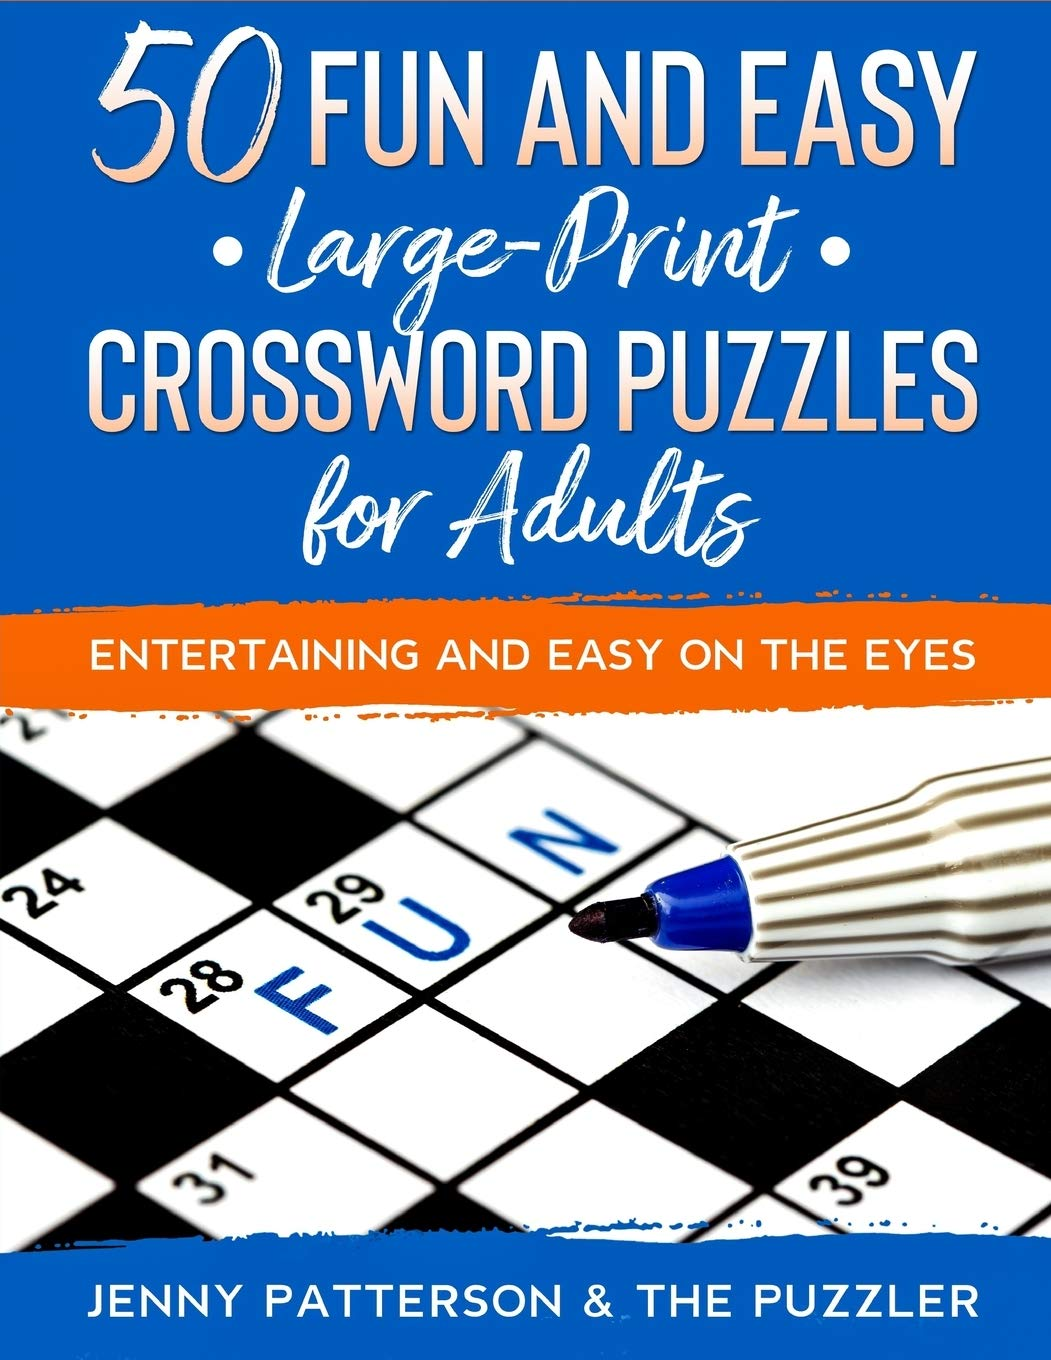 50 Fun Easy Crossword Puzzles For Adults Entertaining And Easy On The Eyes Patterson Jenny Puzzler The 9798666251003 Amazon Com Books